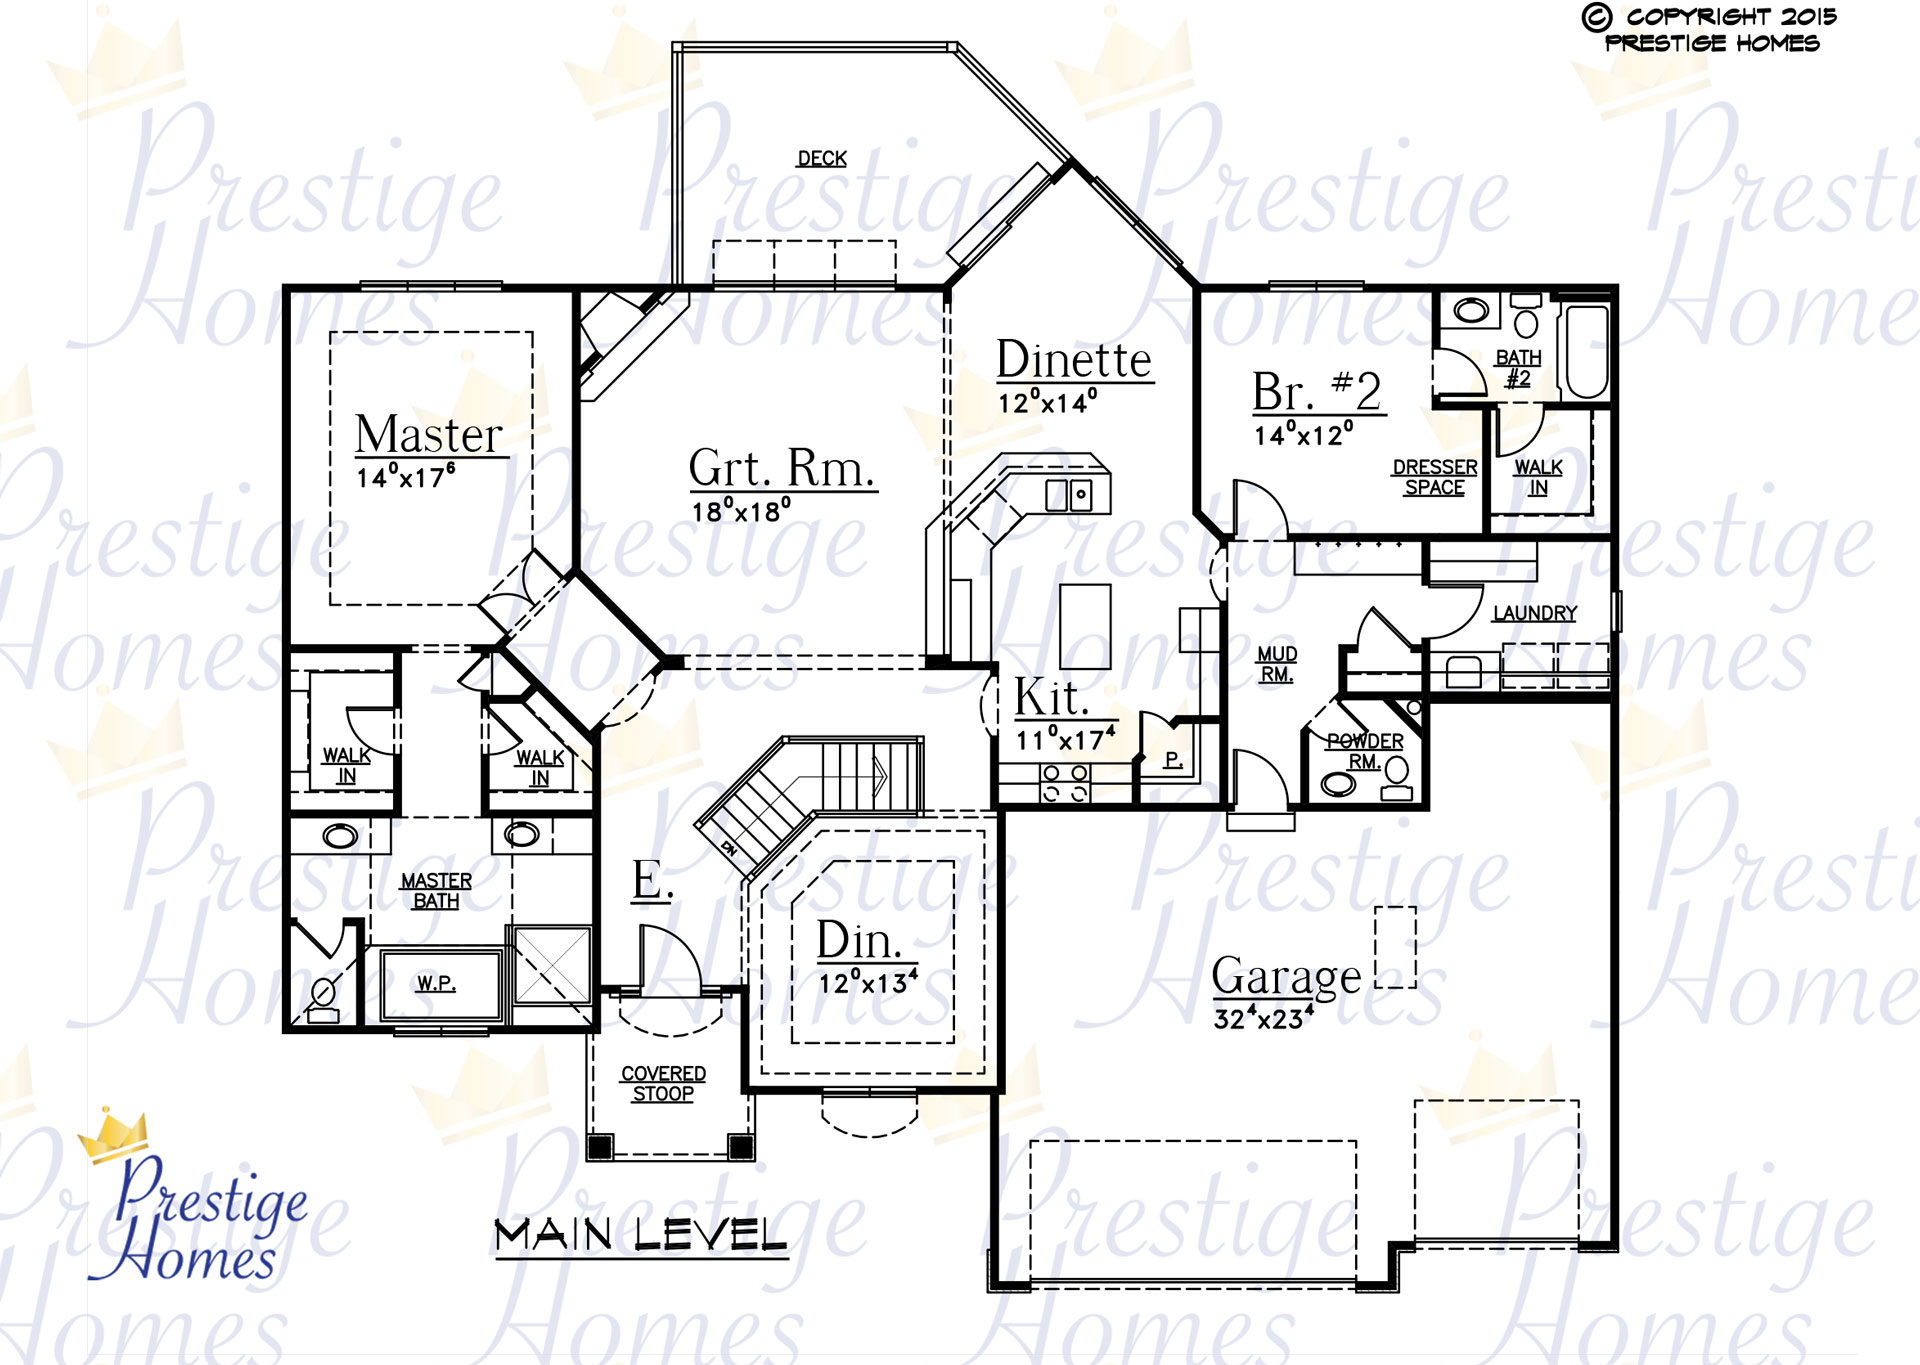 Prestige Homes - Floor Plan - Kelsey 2 Bed - Main